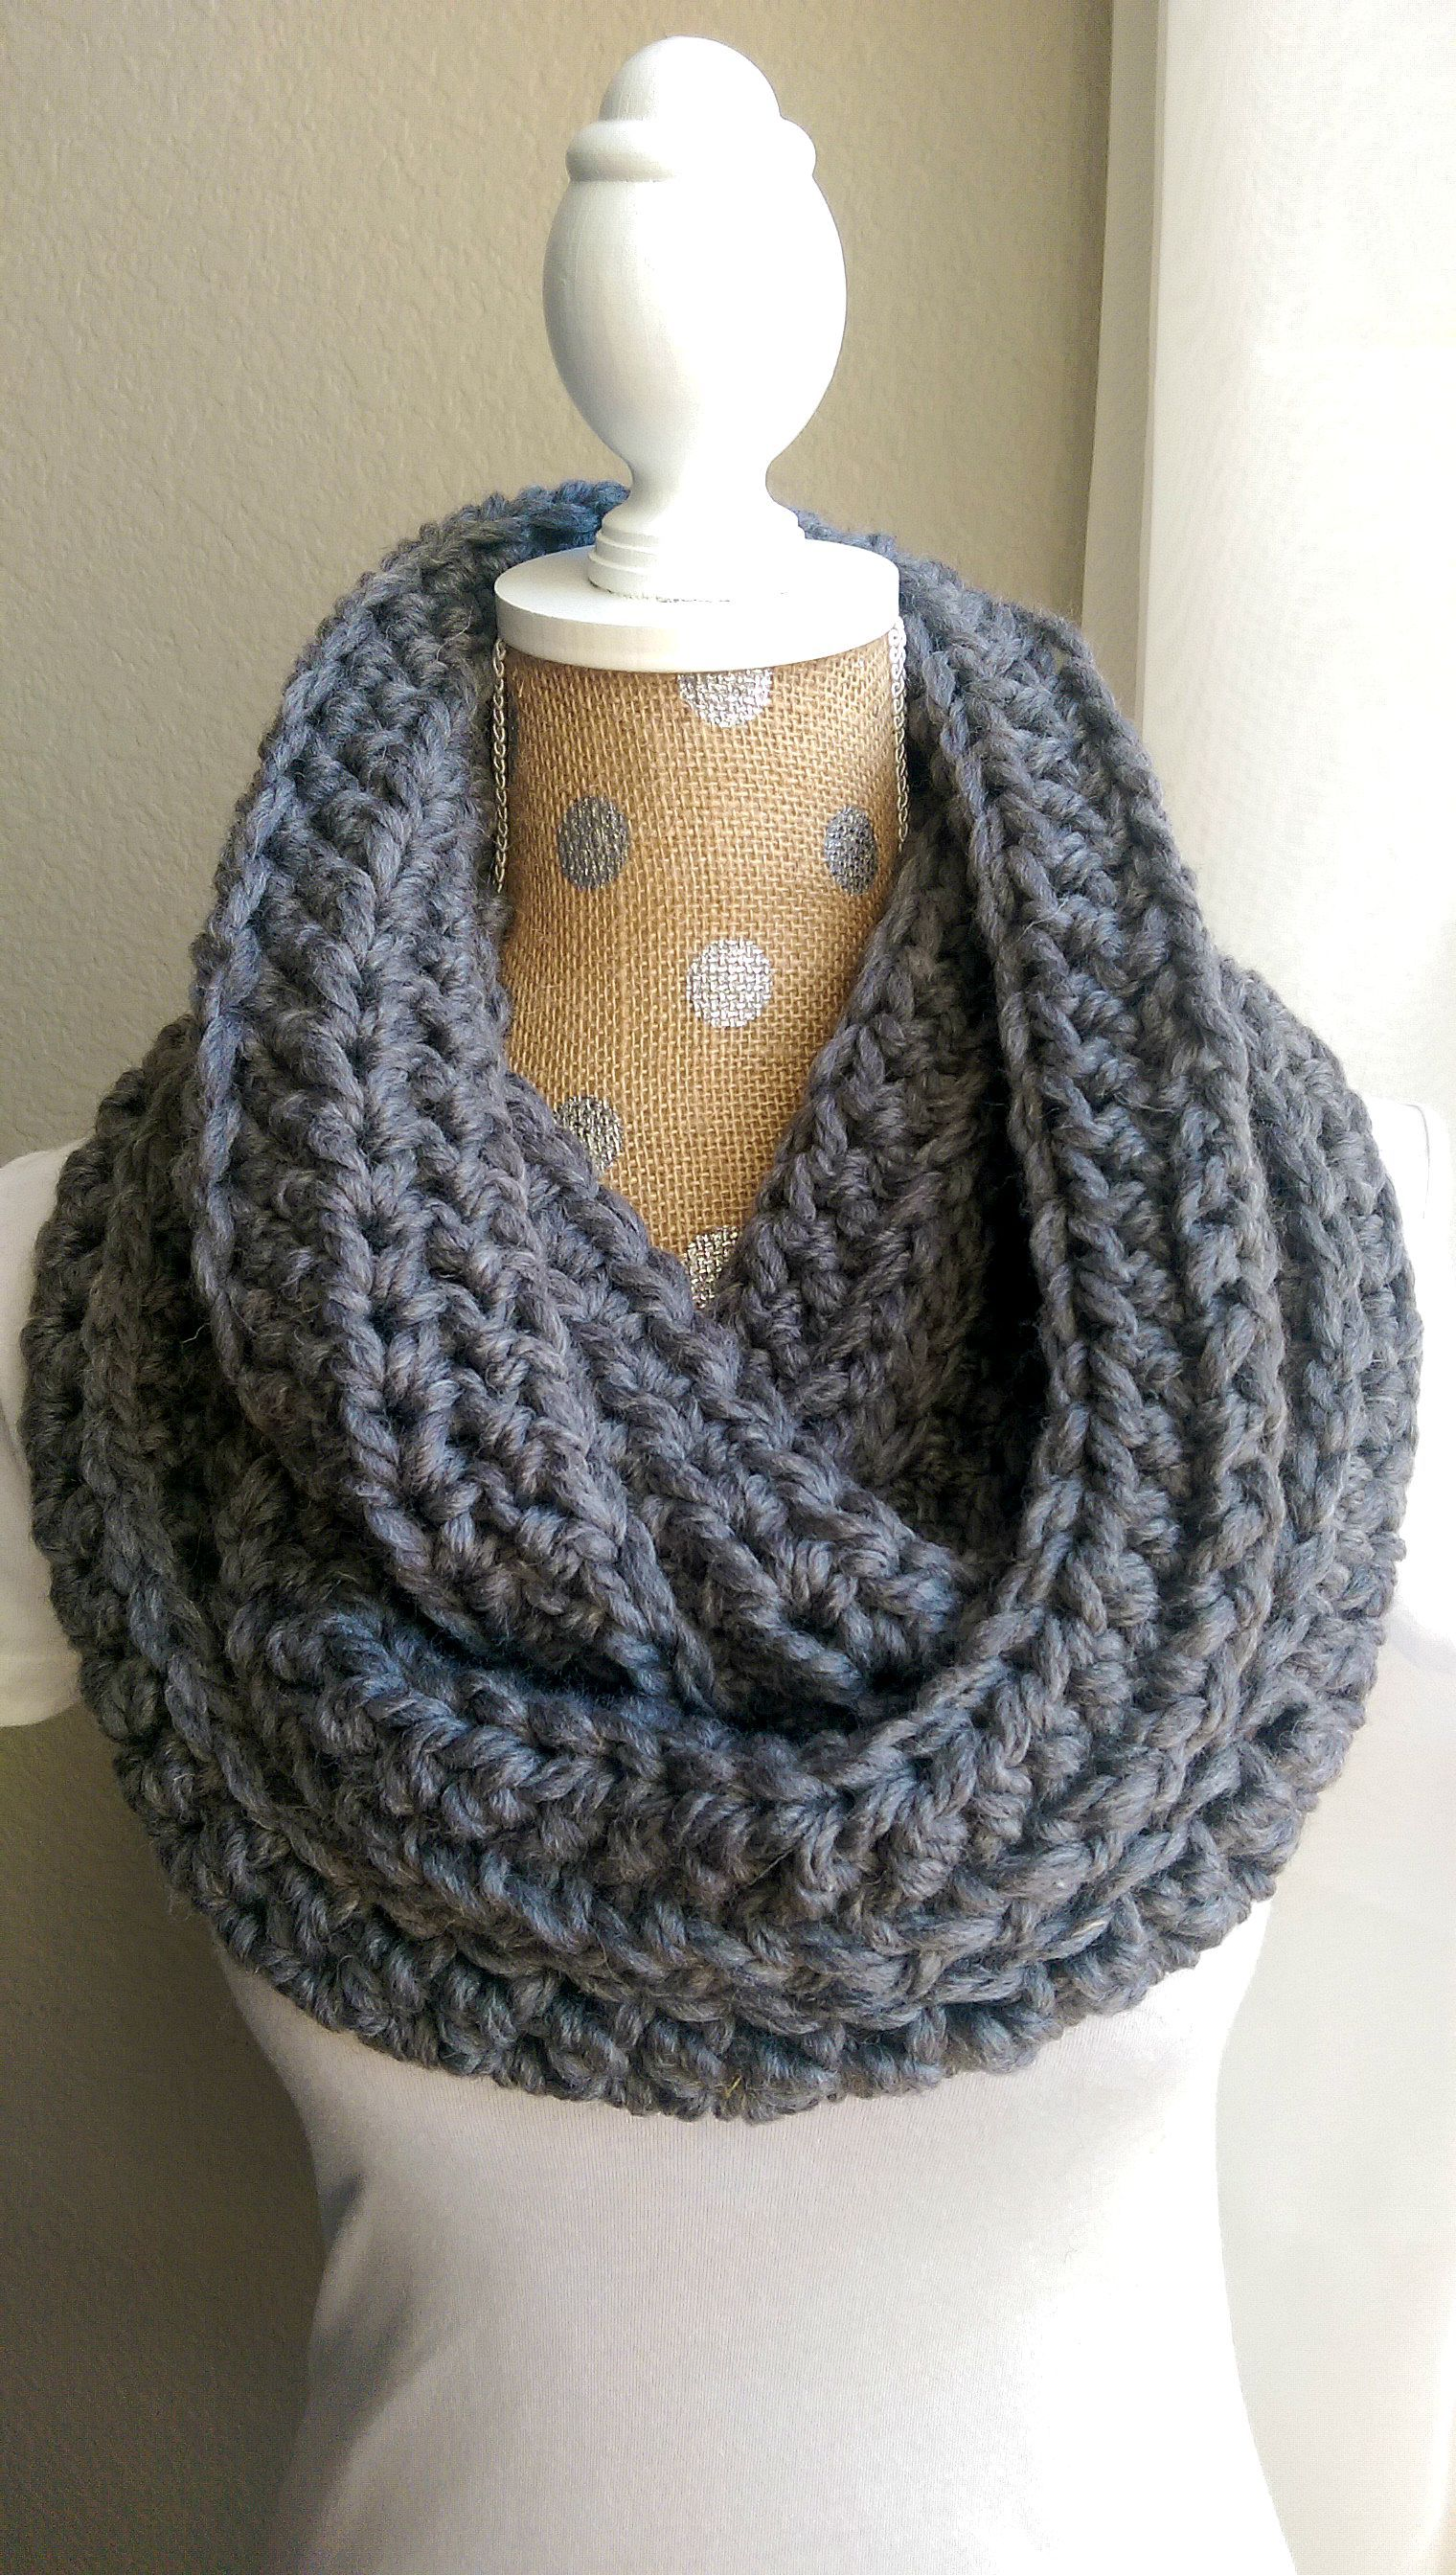 Round 3 Chain 2 Half Double Crochet Into Every Stitch Normally Under Both Legs Of Crochet Infinity Scarf Pattern Scarf Crochet Pattern Chunky Crochet Scarf